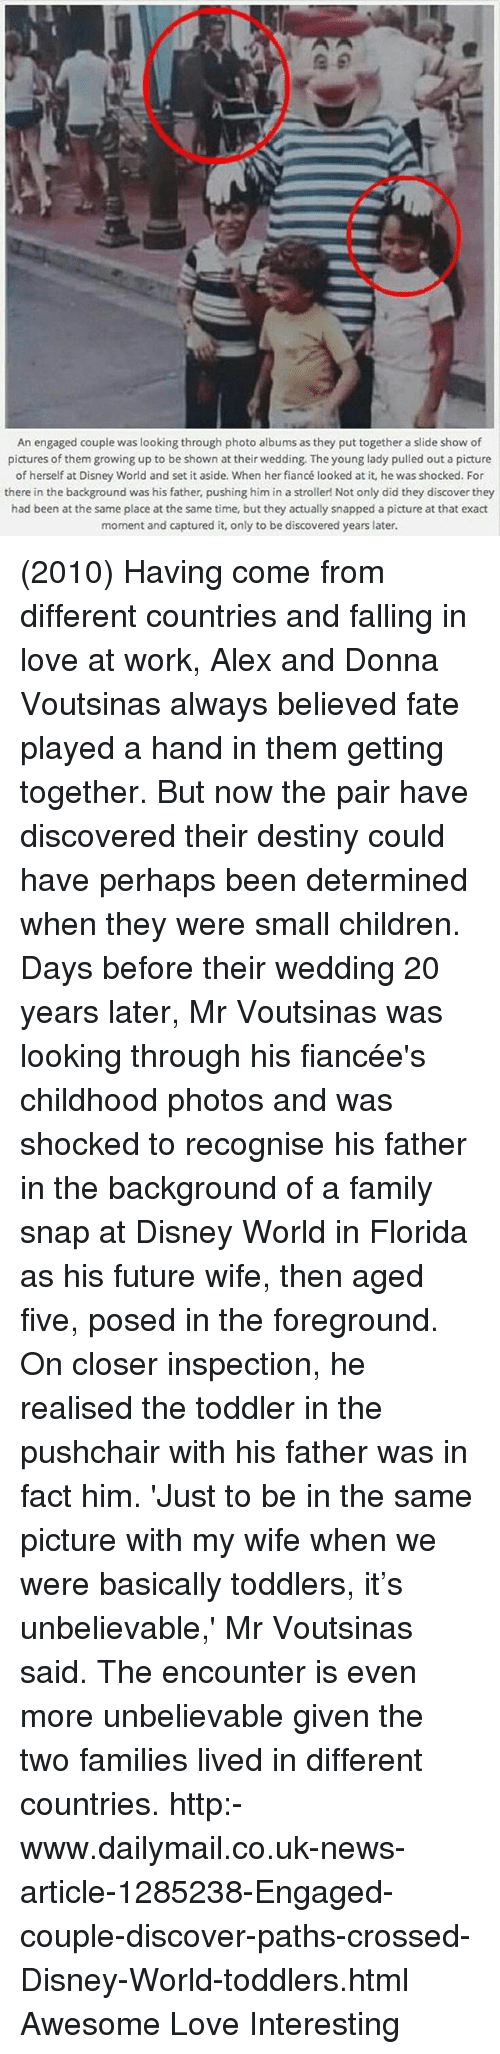 Children, Destiny, and Disney: An engaged couple was looking through photo albums as they put together a slide show of  pictures of them growing up to be shown at their wedding. The young lady pulled out a picture  of herself at Disney World and set it aside. When her fiancé looked at it, he was shocked. For  there in the background was his father, pushing him in a stroller! Not only did they discover they  had been at the same place at the same time, but they actually snapped a picture at that exact  moment and captured it, only to be discovered years later.  moment and captured it only to be discovered years later. (2010) Having come from different countries and falling in love at work, Alex and Donna Voutsinas always believed fate played a hand in them getting together. But now the pair have discovered their destiny could have perhaps been determined when they were small children. Days before their wedding 20 years later, Mr Voutsinas was looking through his fiancée's childhood photos and was shocked to recognise his father in the background of a family snap at Disney World in Florida as his future wife, then aged five, posed in the foreground. On closer inspection, he realised the toddler in the pushchair with his father was in fact him. 'Just to be in the same picture with my wife when we were basically toddlers, it's unbelievable,' Mr Voutsinas said. The encounter is even more unbelievable given the two families lived in different countries. http:-www.dailymail.co.uk-news-article-1285238-Engaged-couple-discover-paths-crossed-Disney-World-toddlers.html Awesome Love Interesting